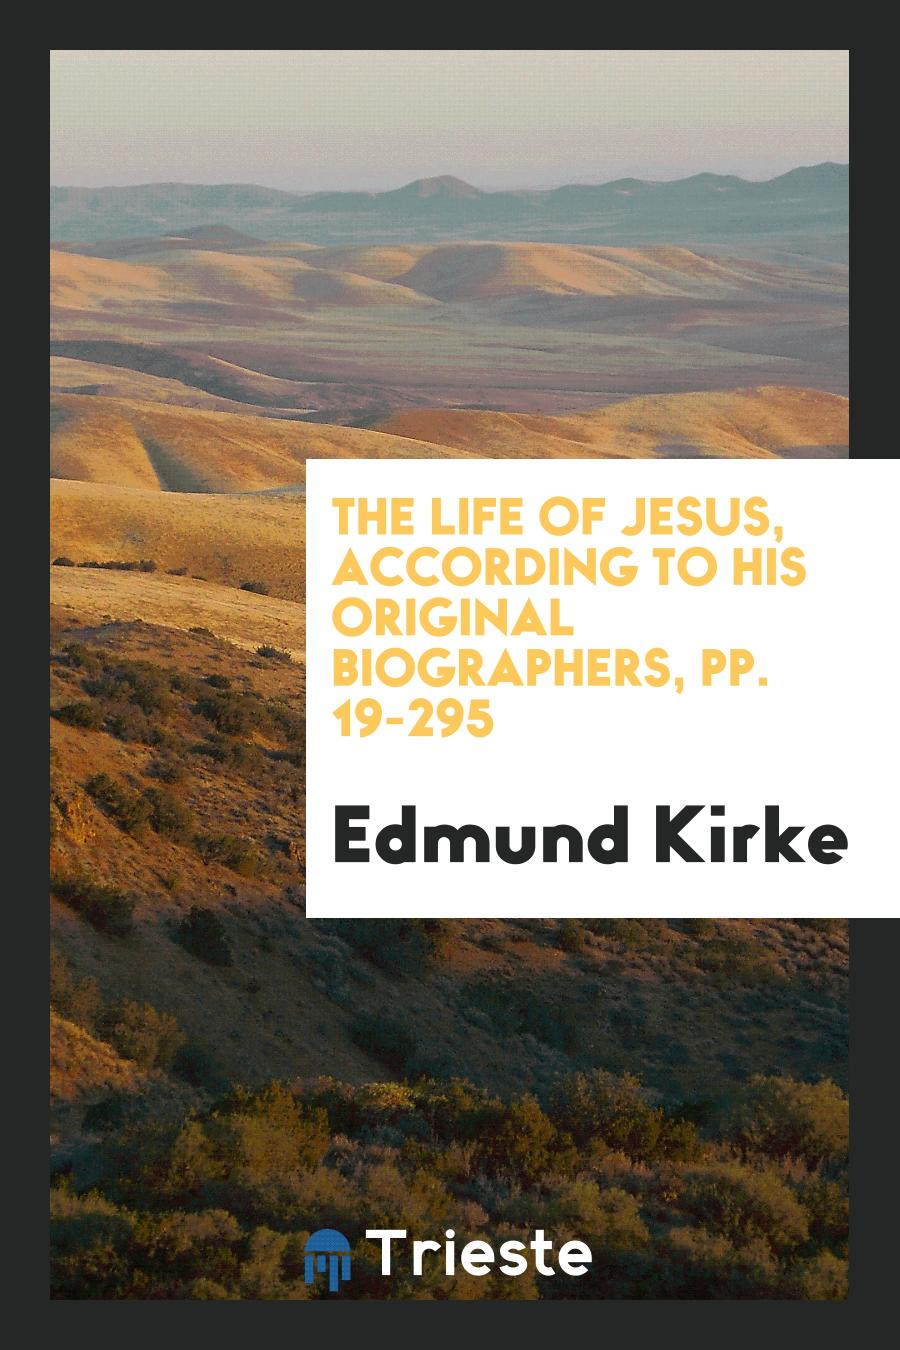 The Life of Jesus, According to His Original Biographers, pp. 19-295